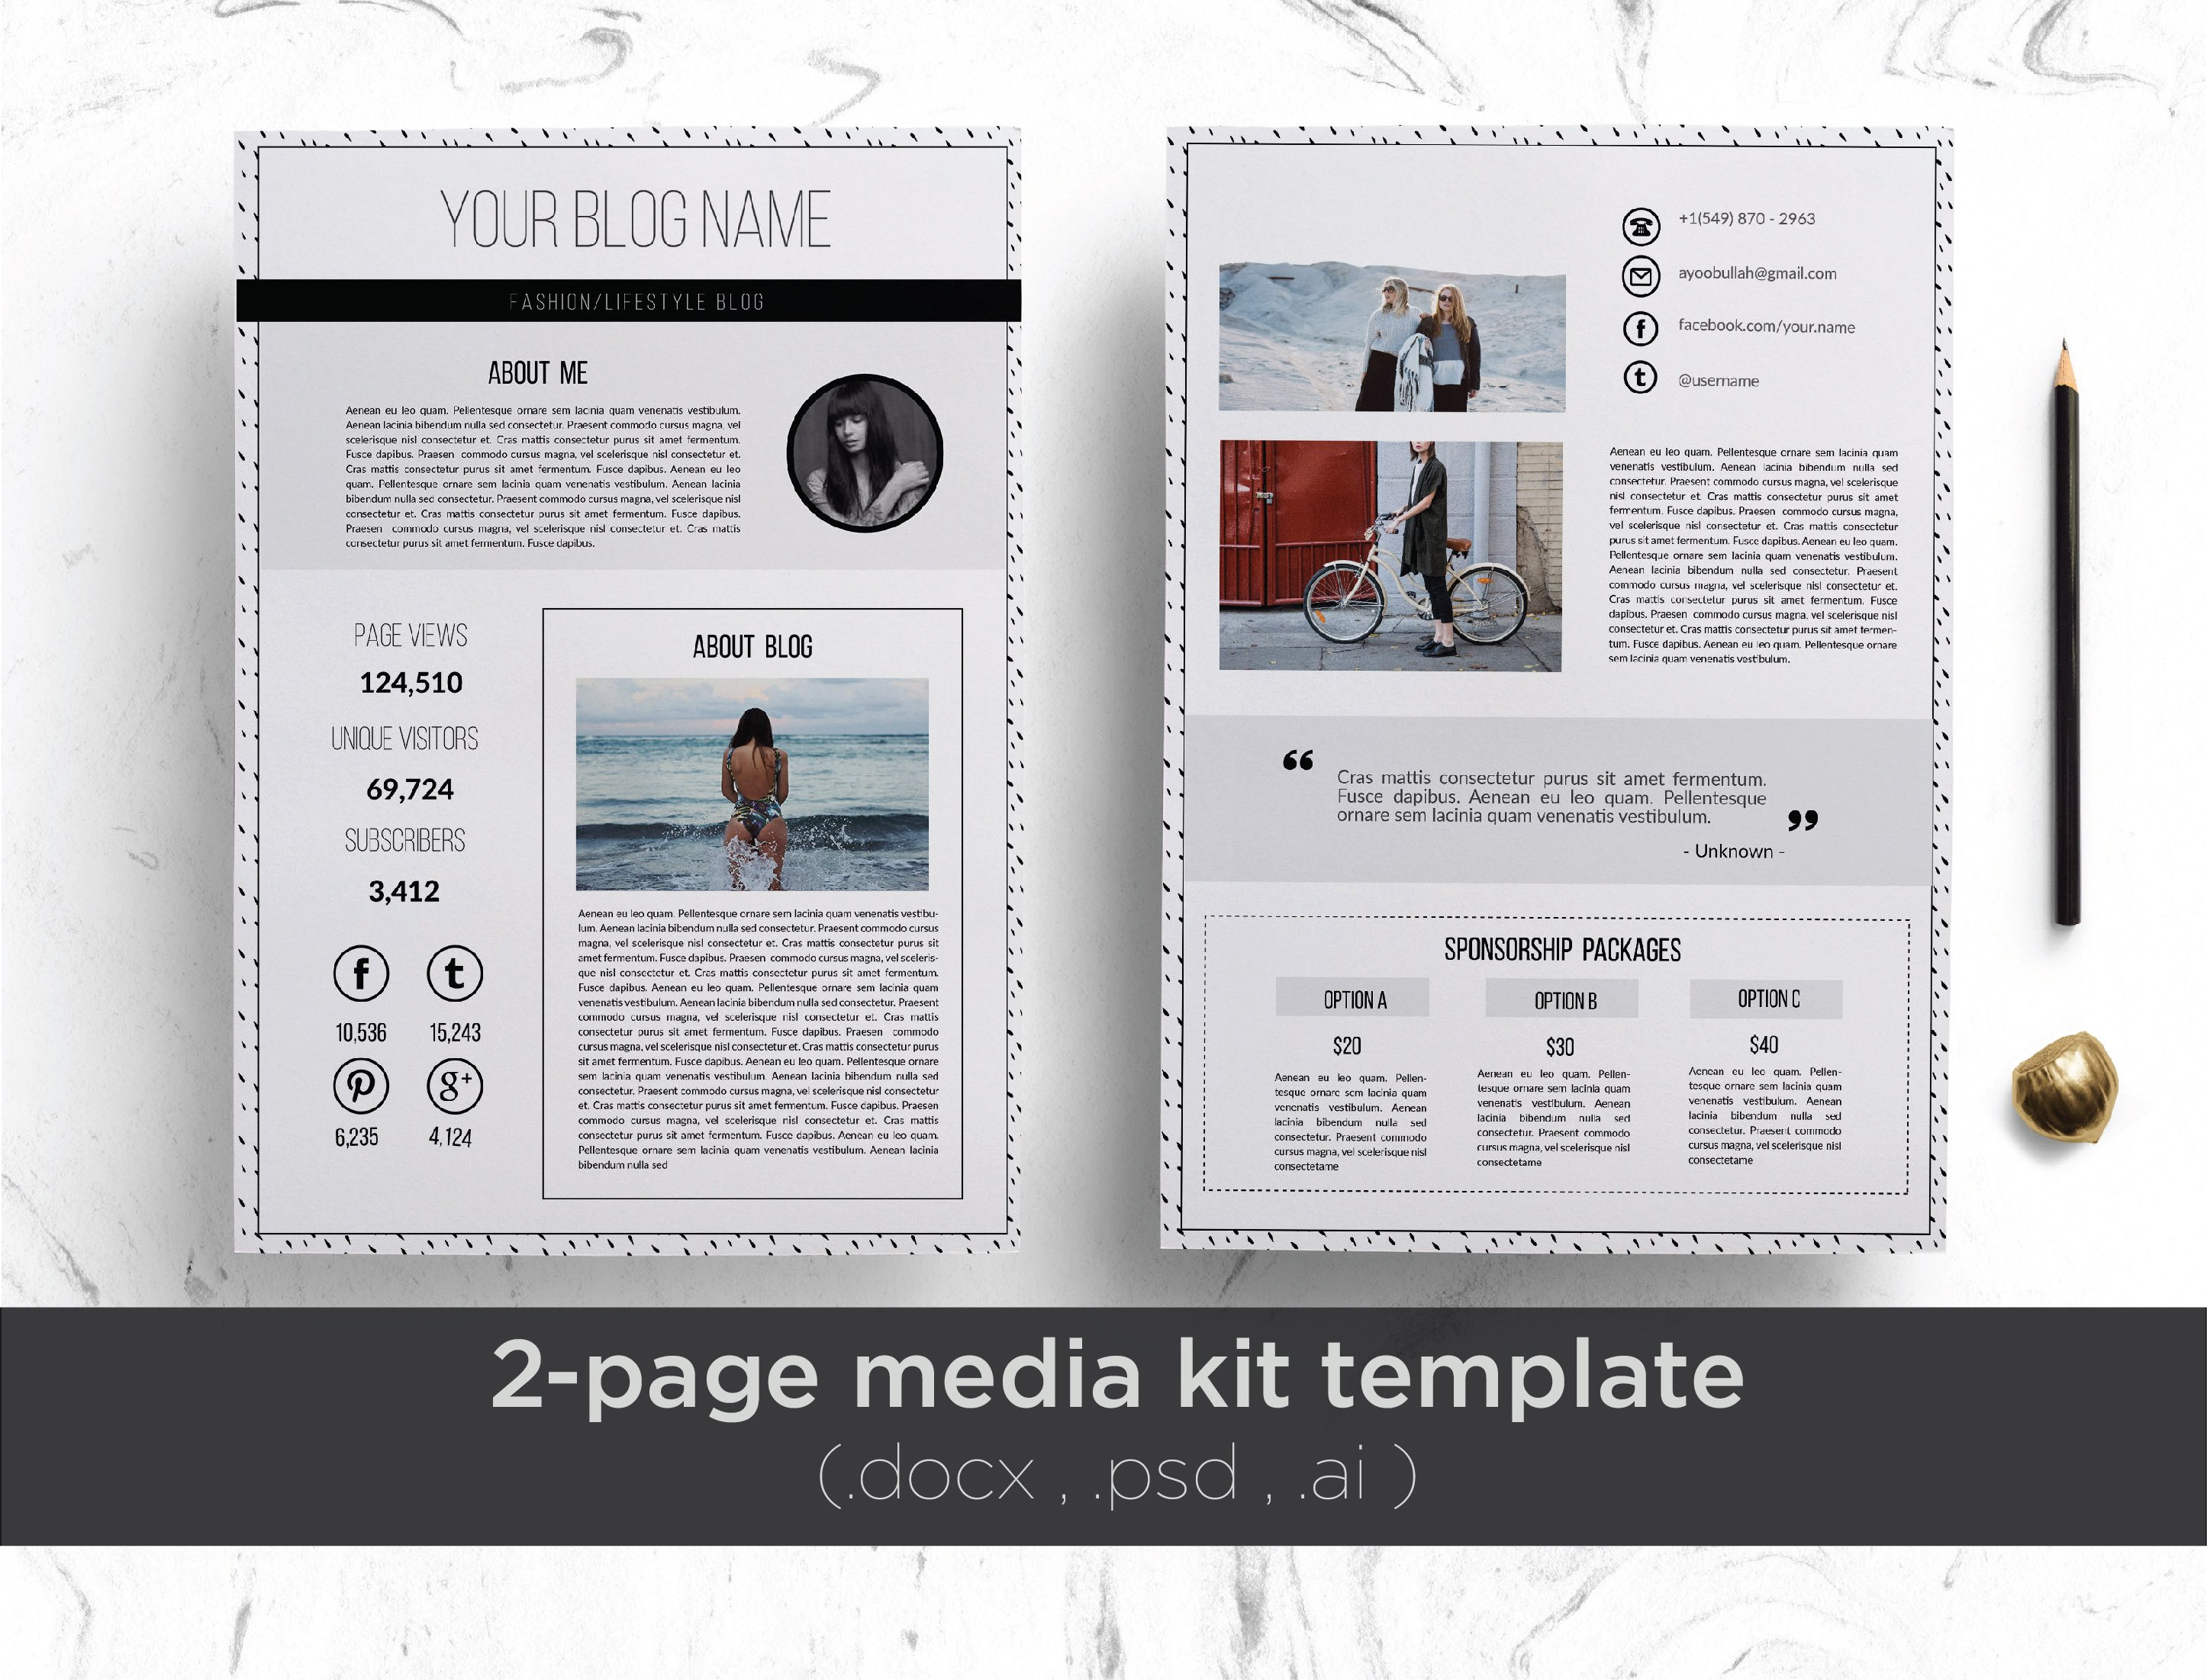 press packet template - elegant 2 page media kit template stationery templates